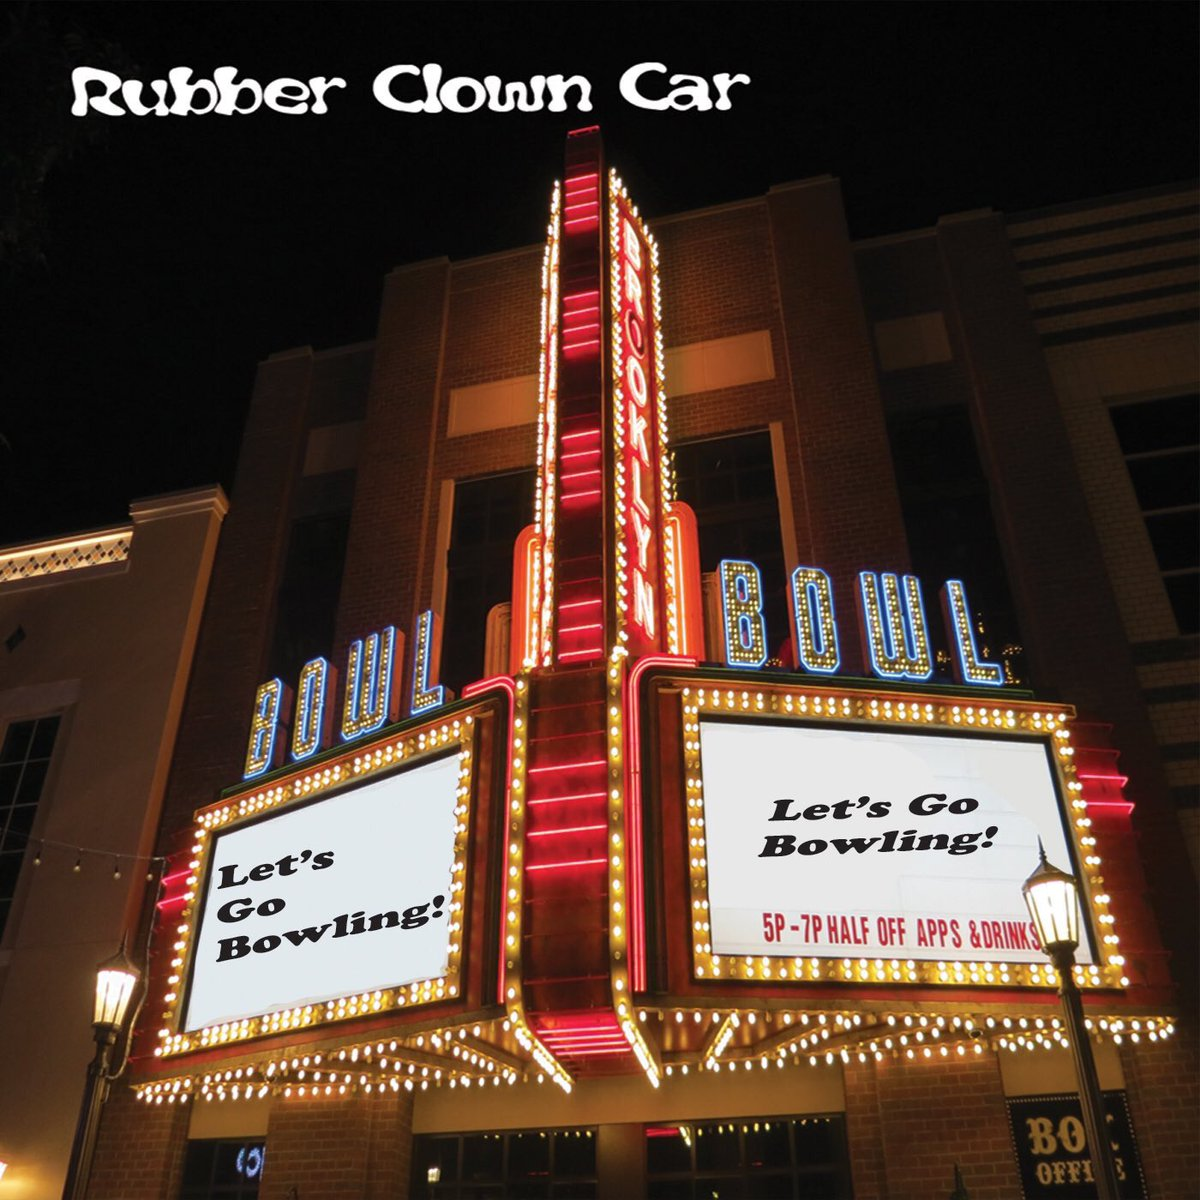 #Follow @rubberclowncar #Music ranging from #PowerPop #ClassicRock #Eclectic #PopRock #SoftAmbient #Acoustic #Orchestral #GreatLyrics <br>http://pic.twitter.com/iI4Kkjggk2